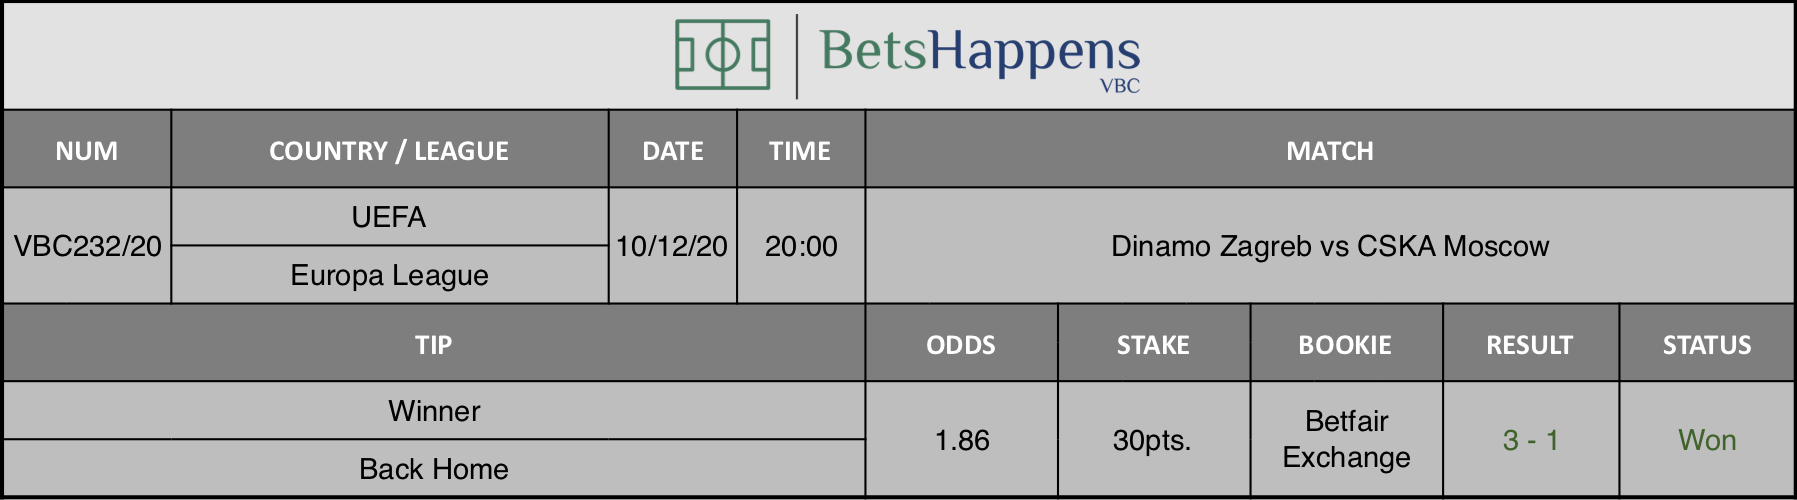 Results of our tip for the Dinamo Zagreb vs CSKA Moscow match where Winner Back Home is recommended.